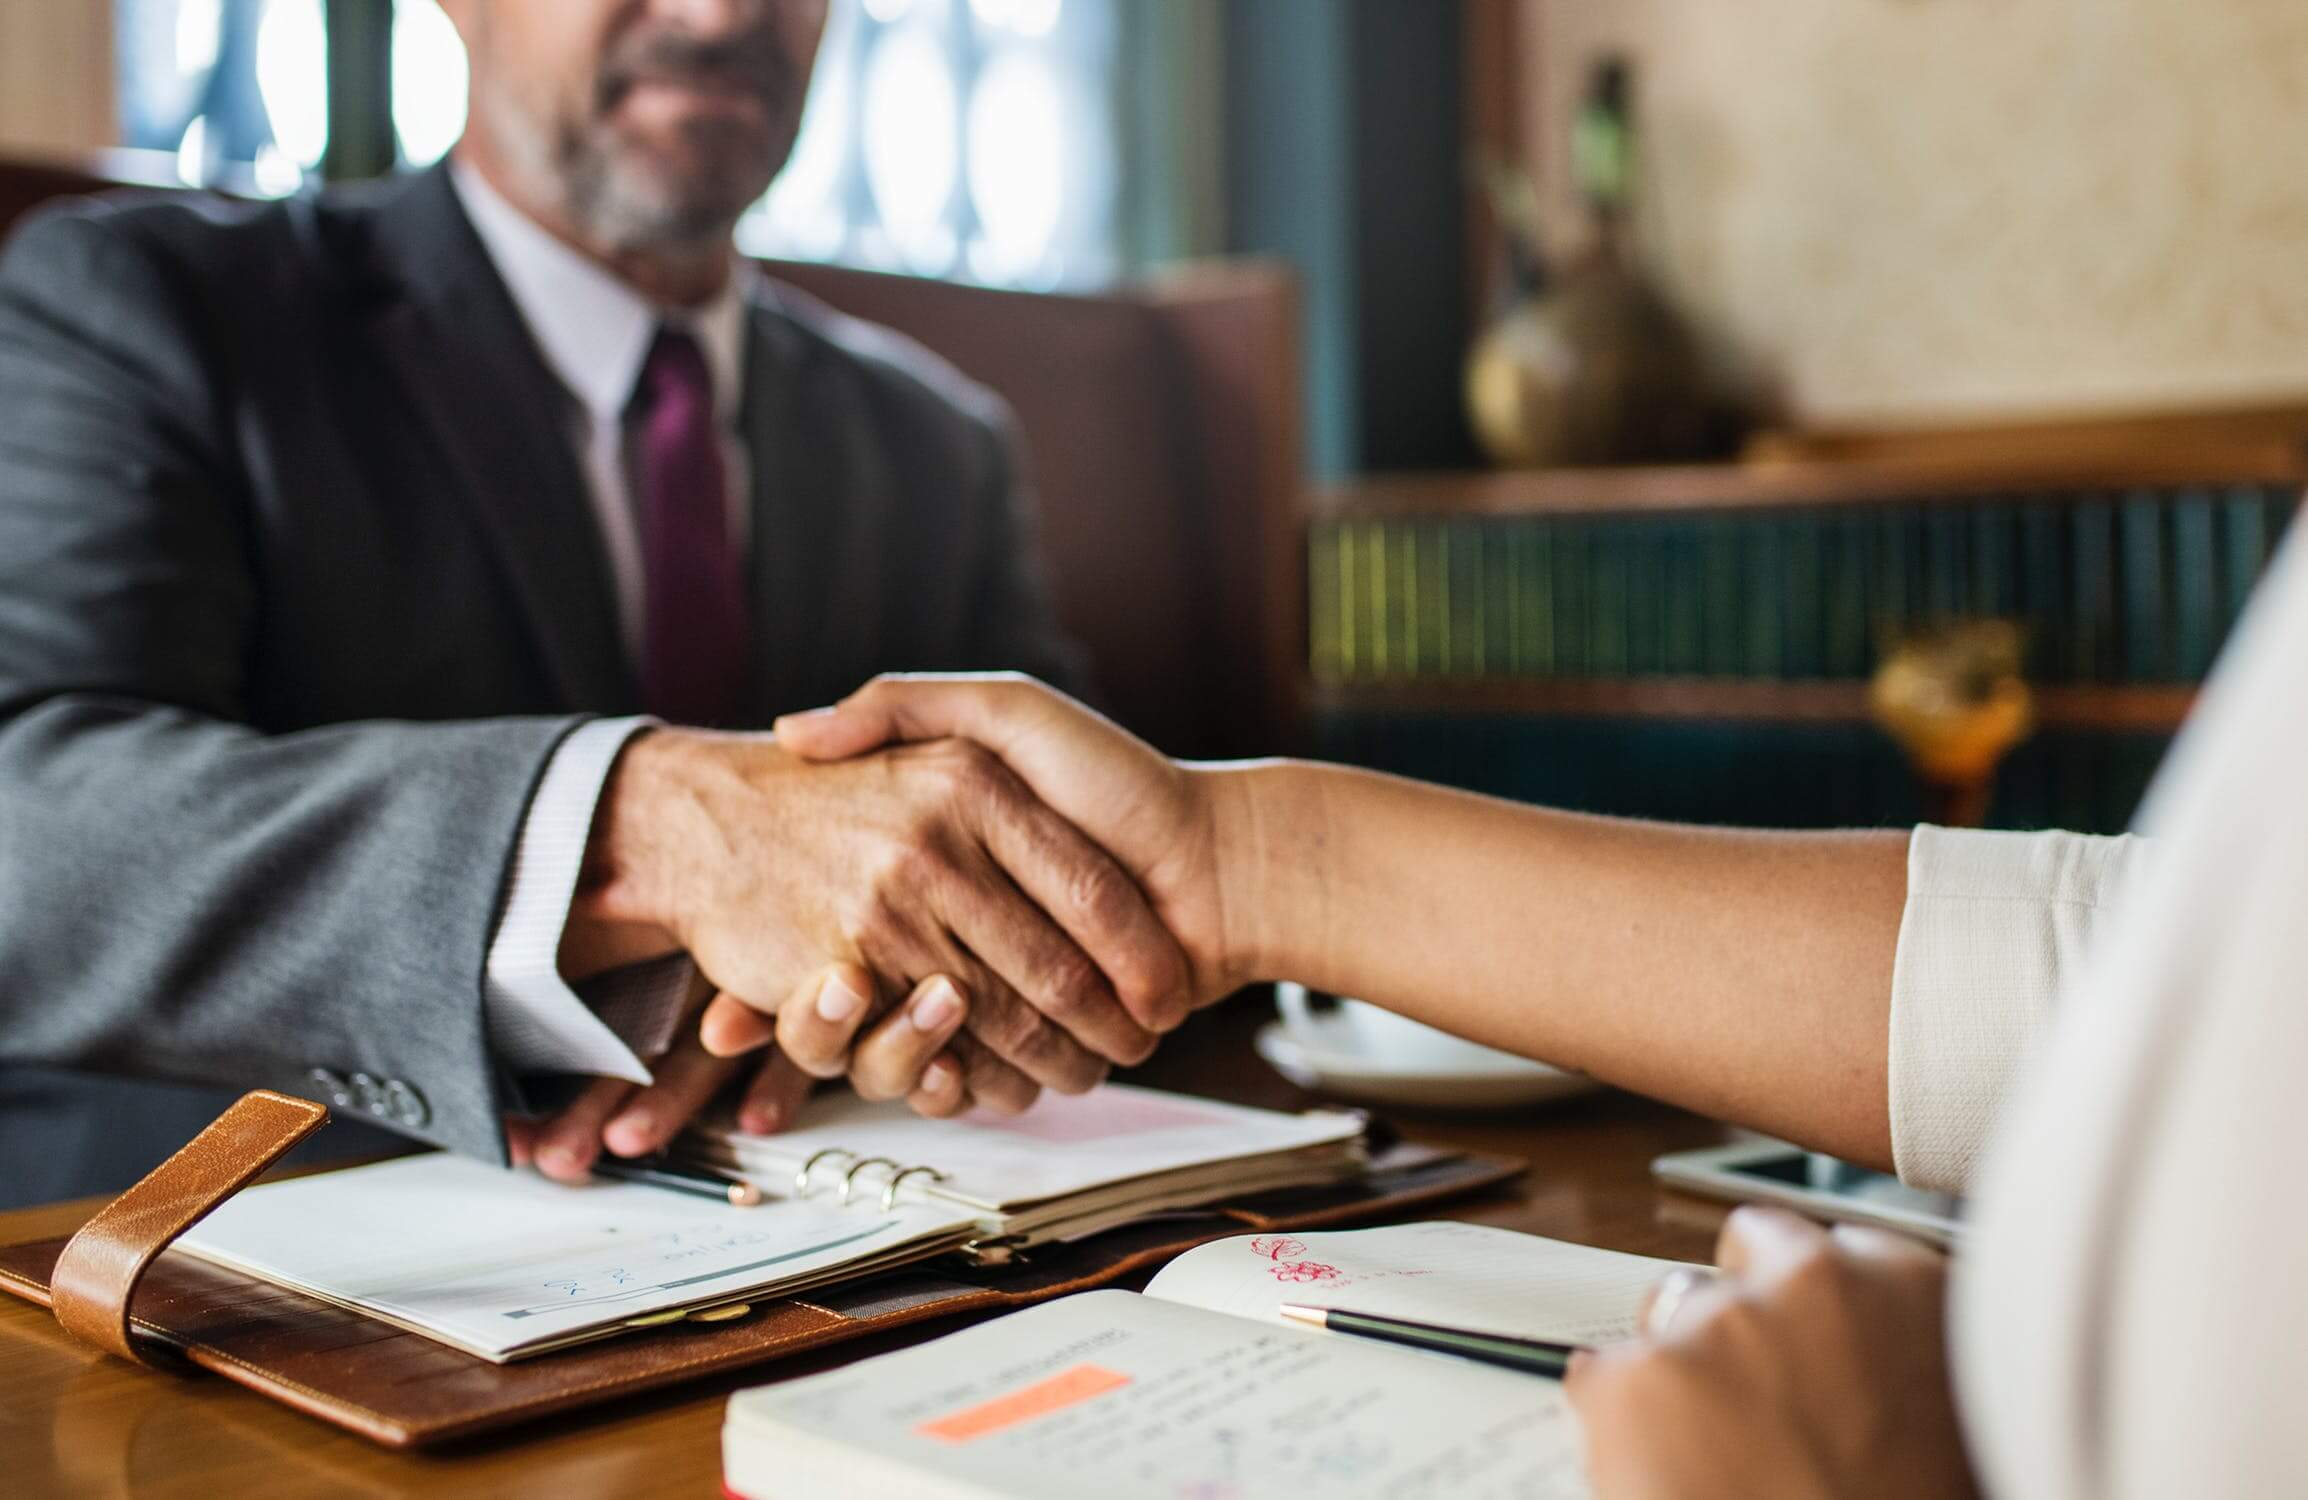 How to find an investor for your startup